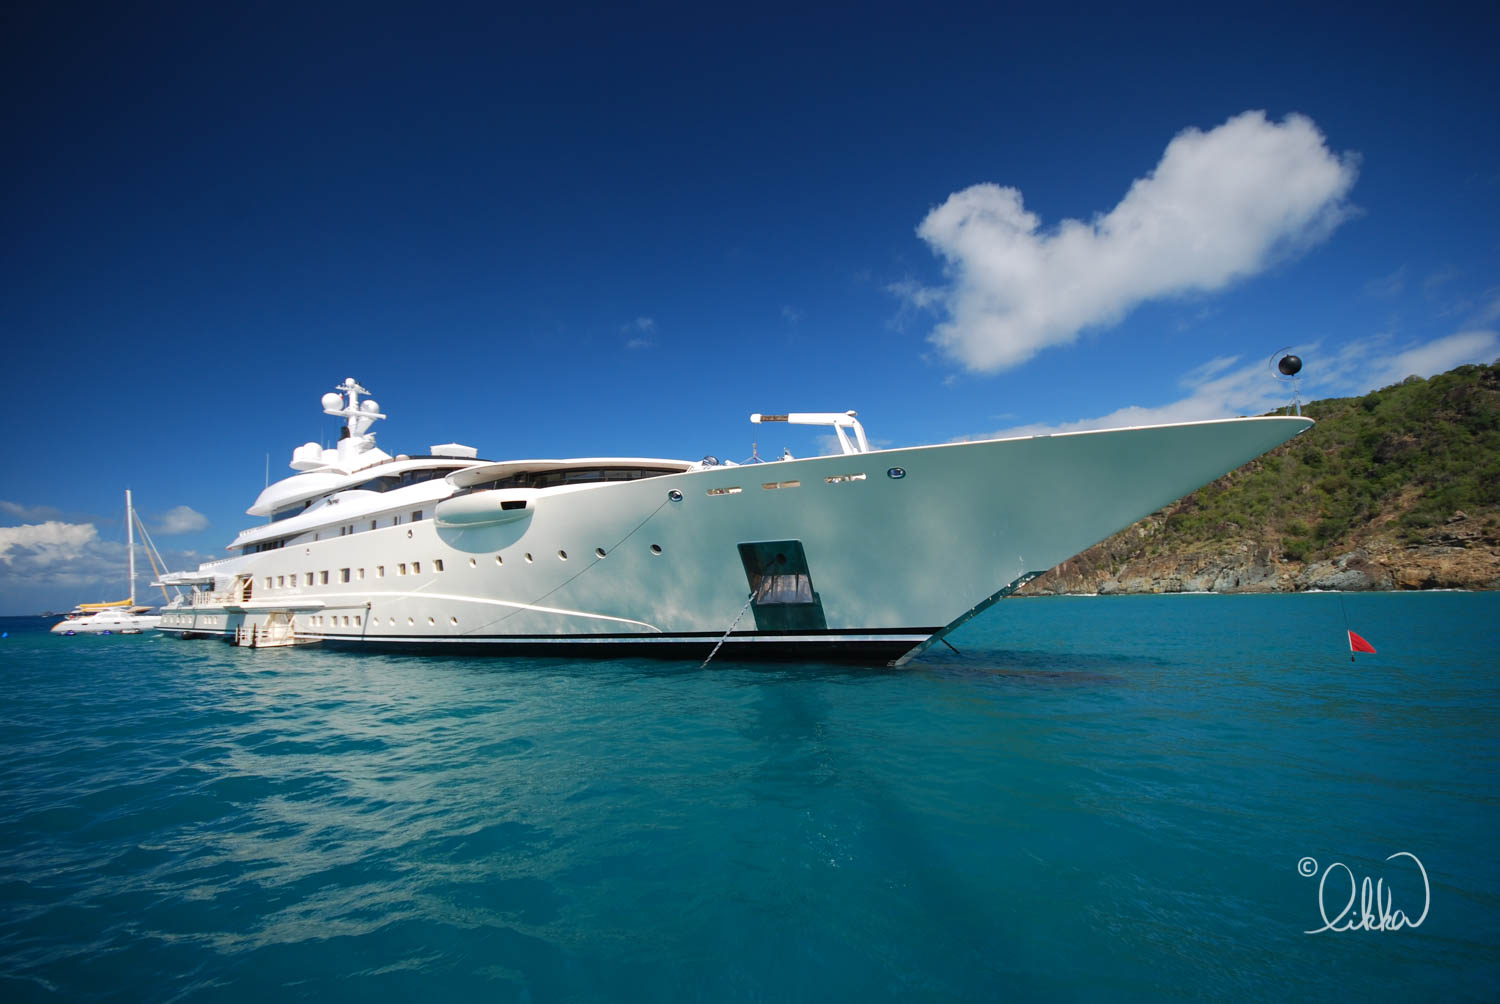 yacht-luxury-likka-6.jpg